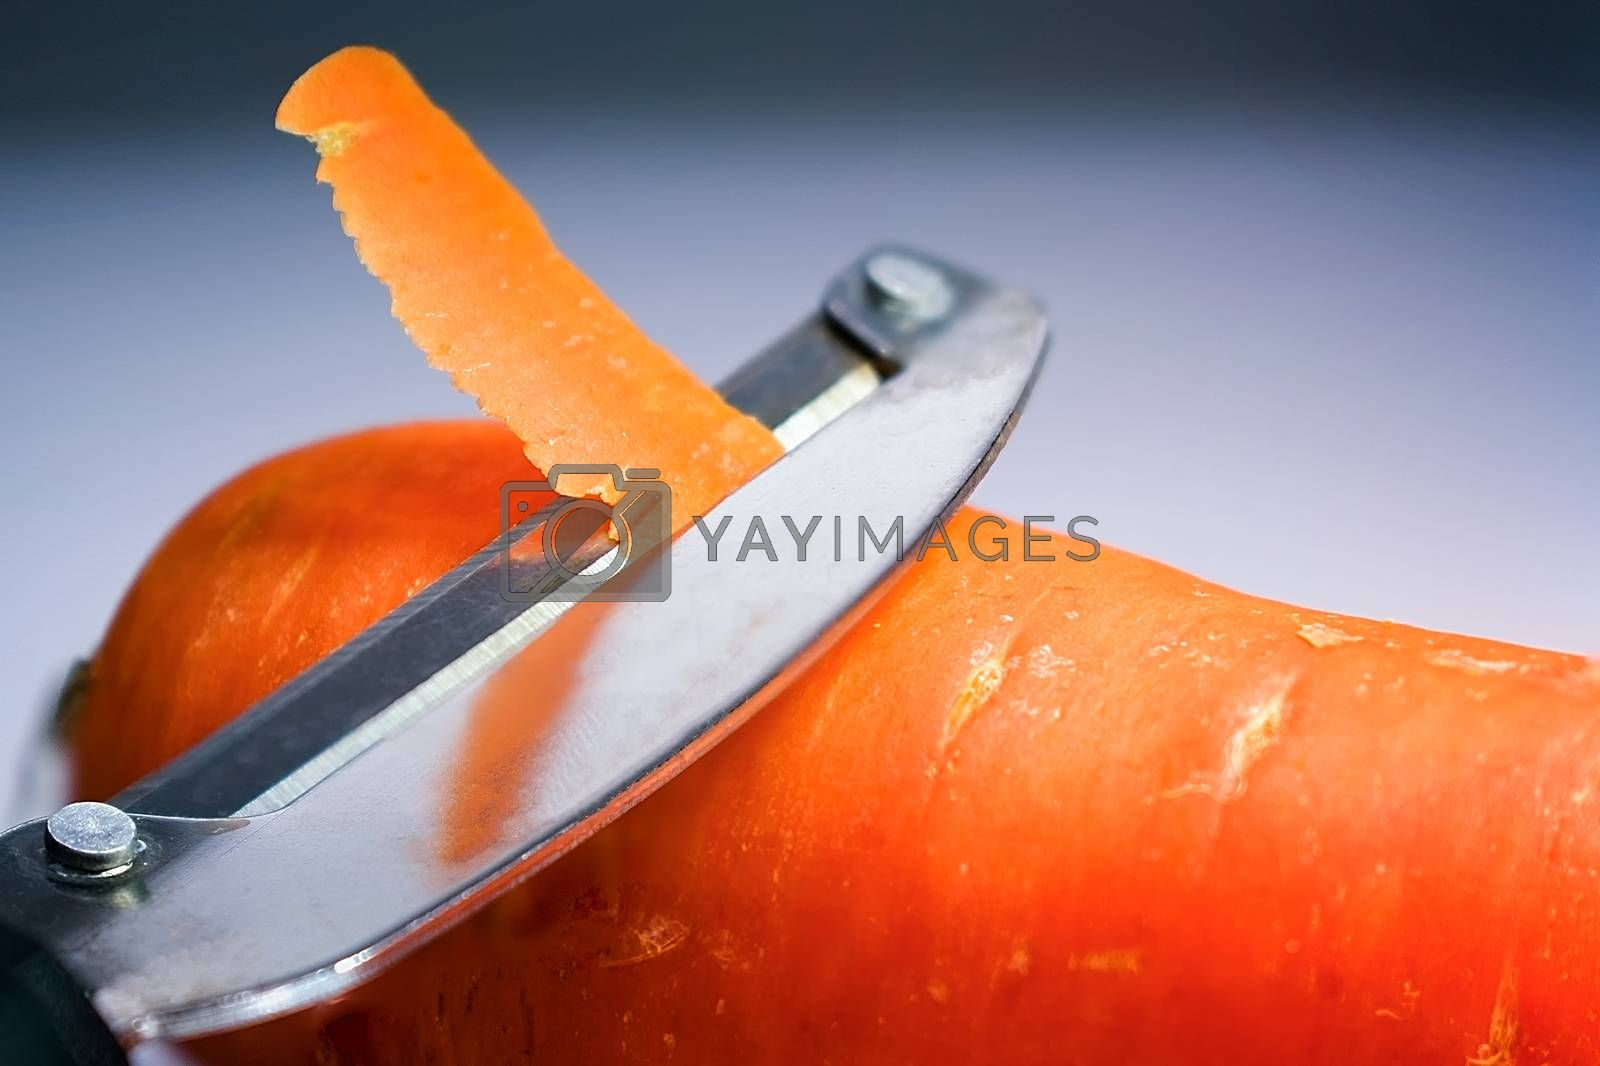 Peeler Peeling the Skin Off a Fresh Carrot